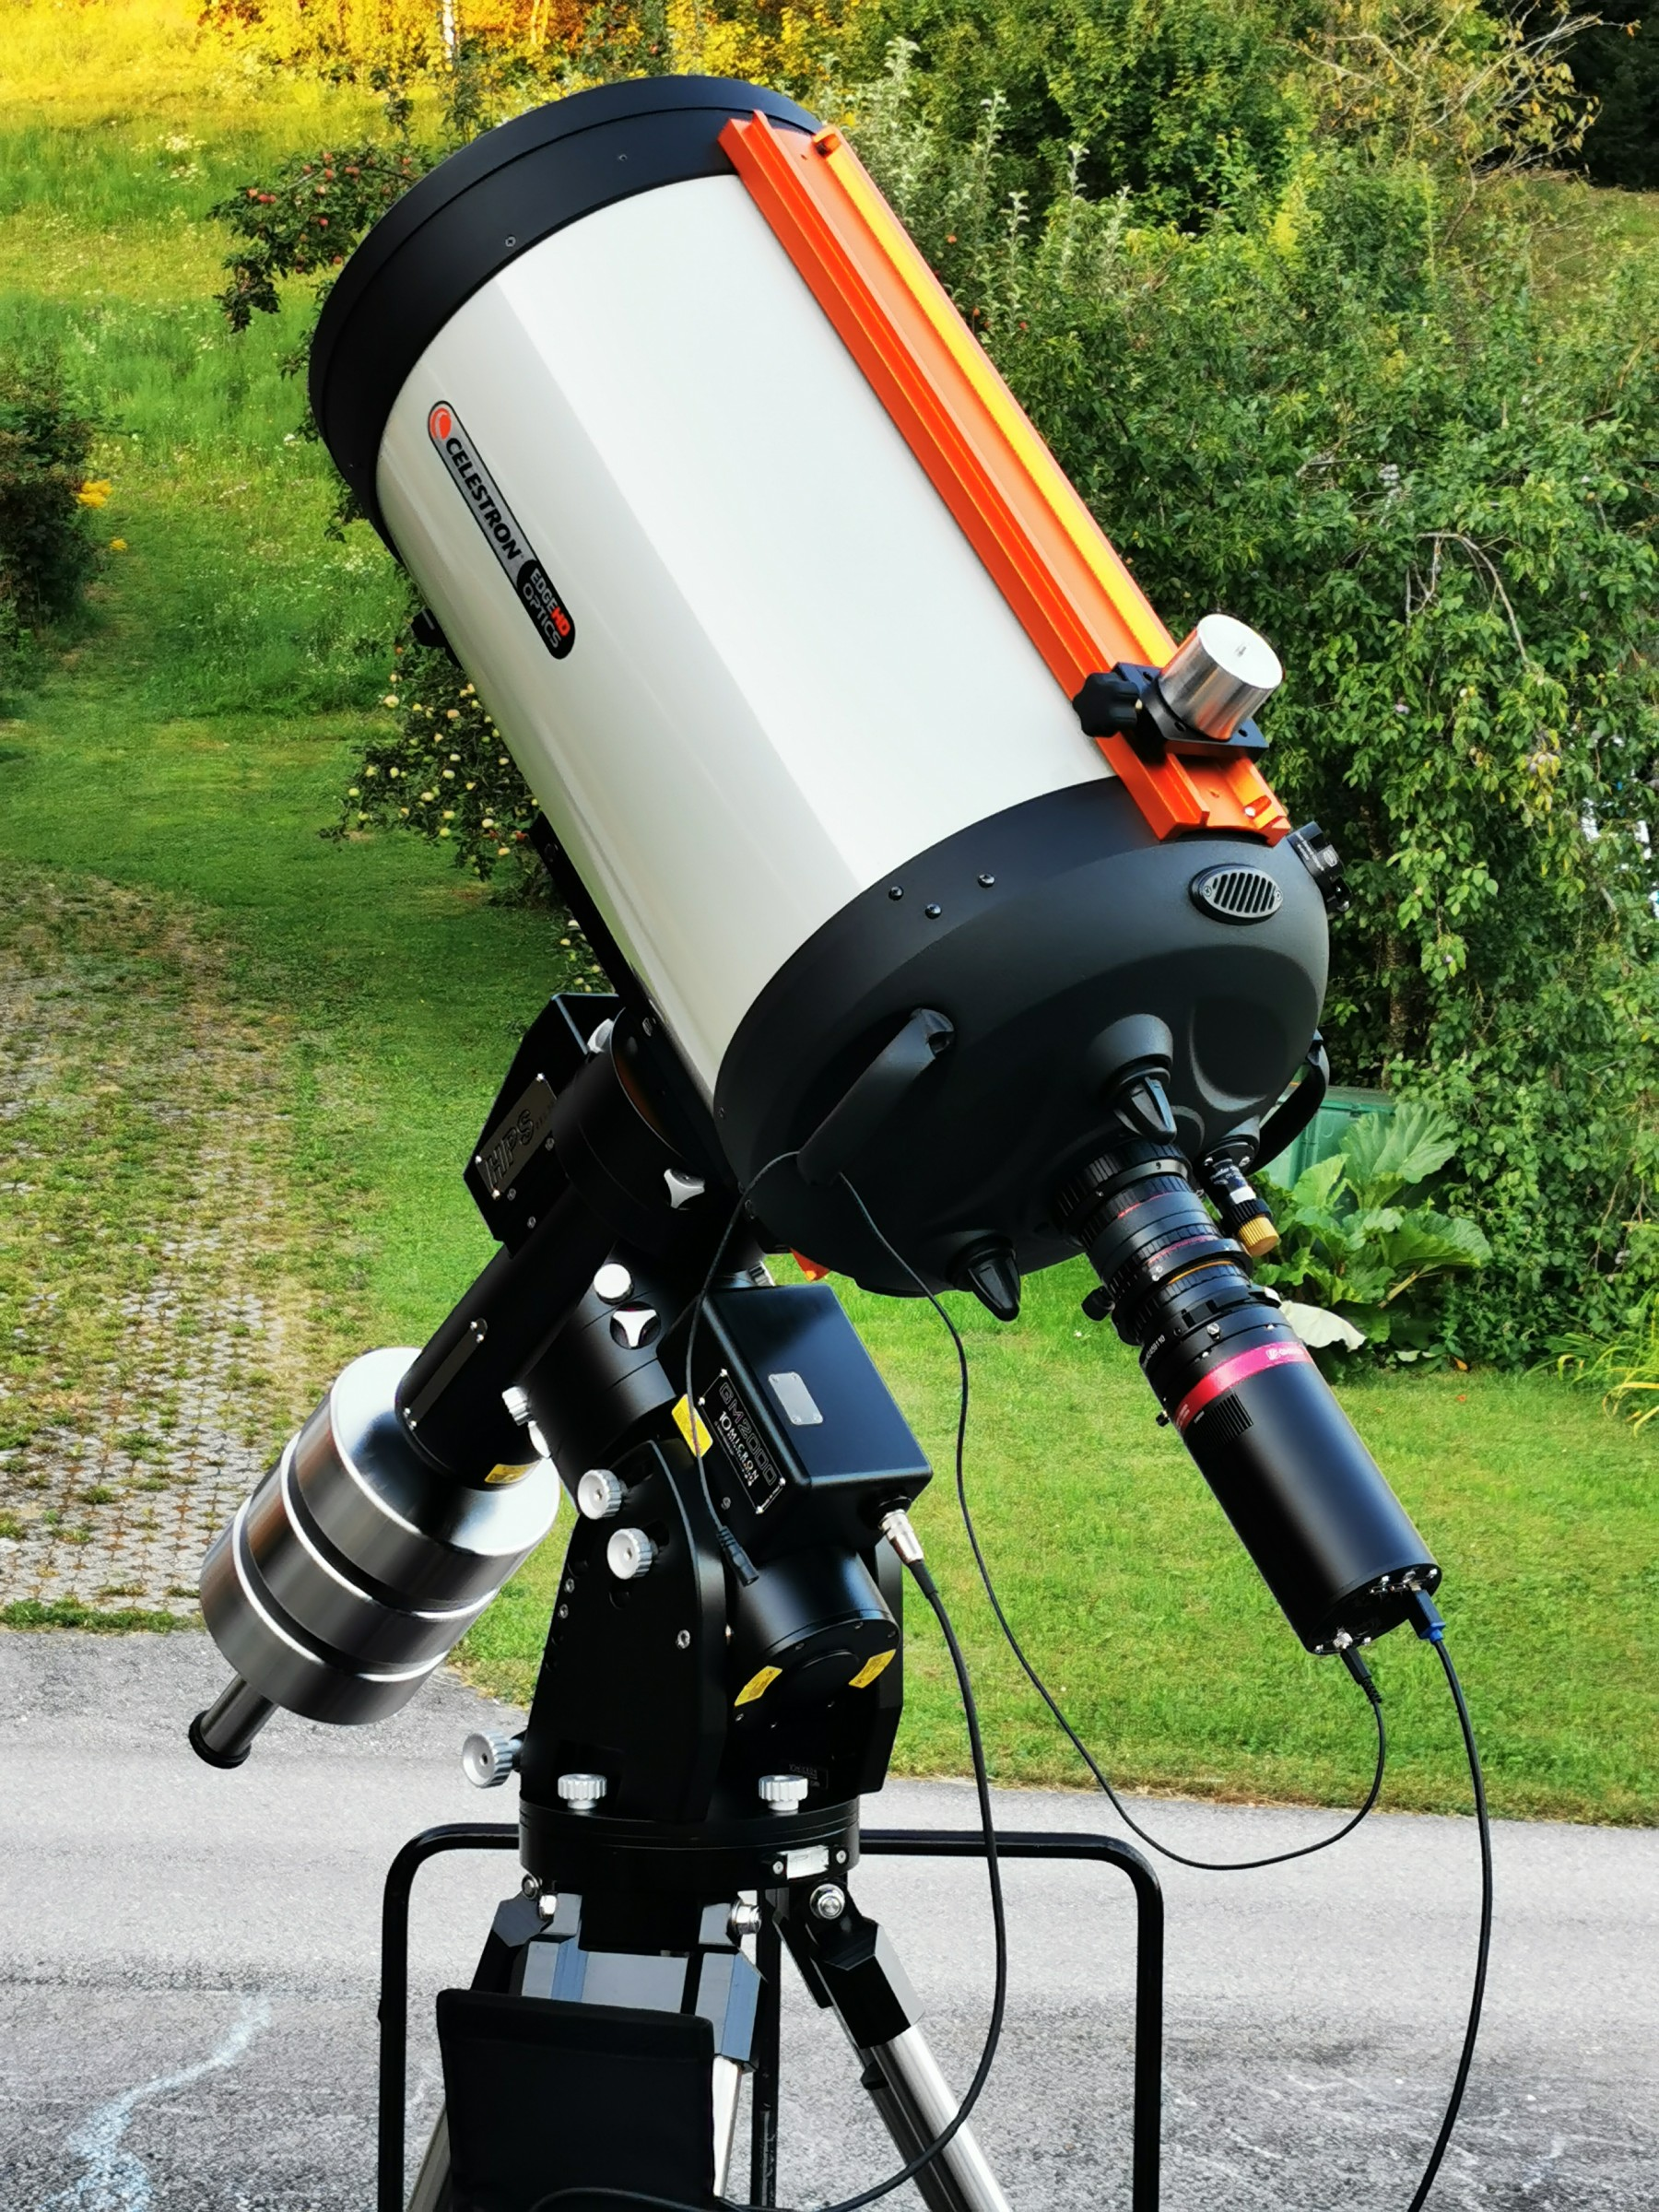 Application image: Celestron C11 EdgeHD with QHY600 PRO